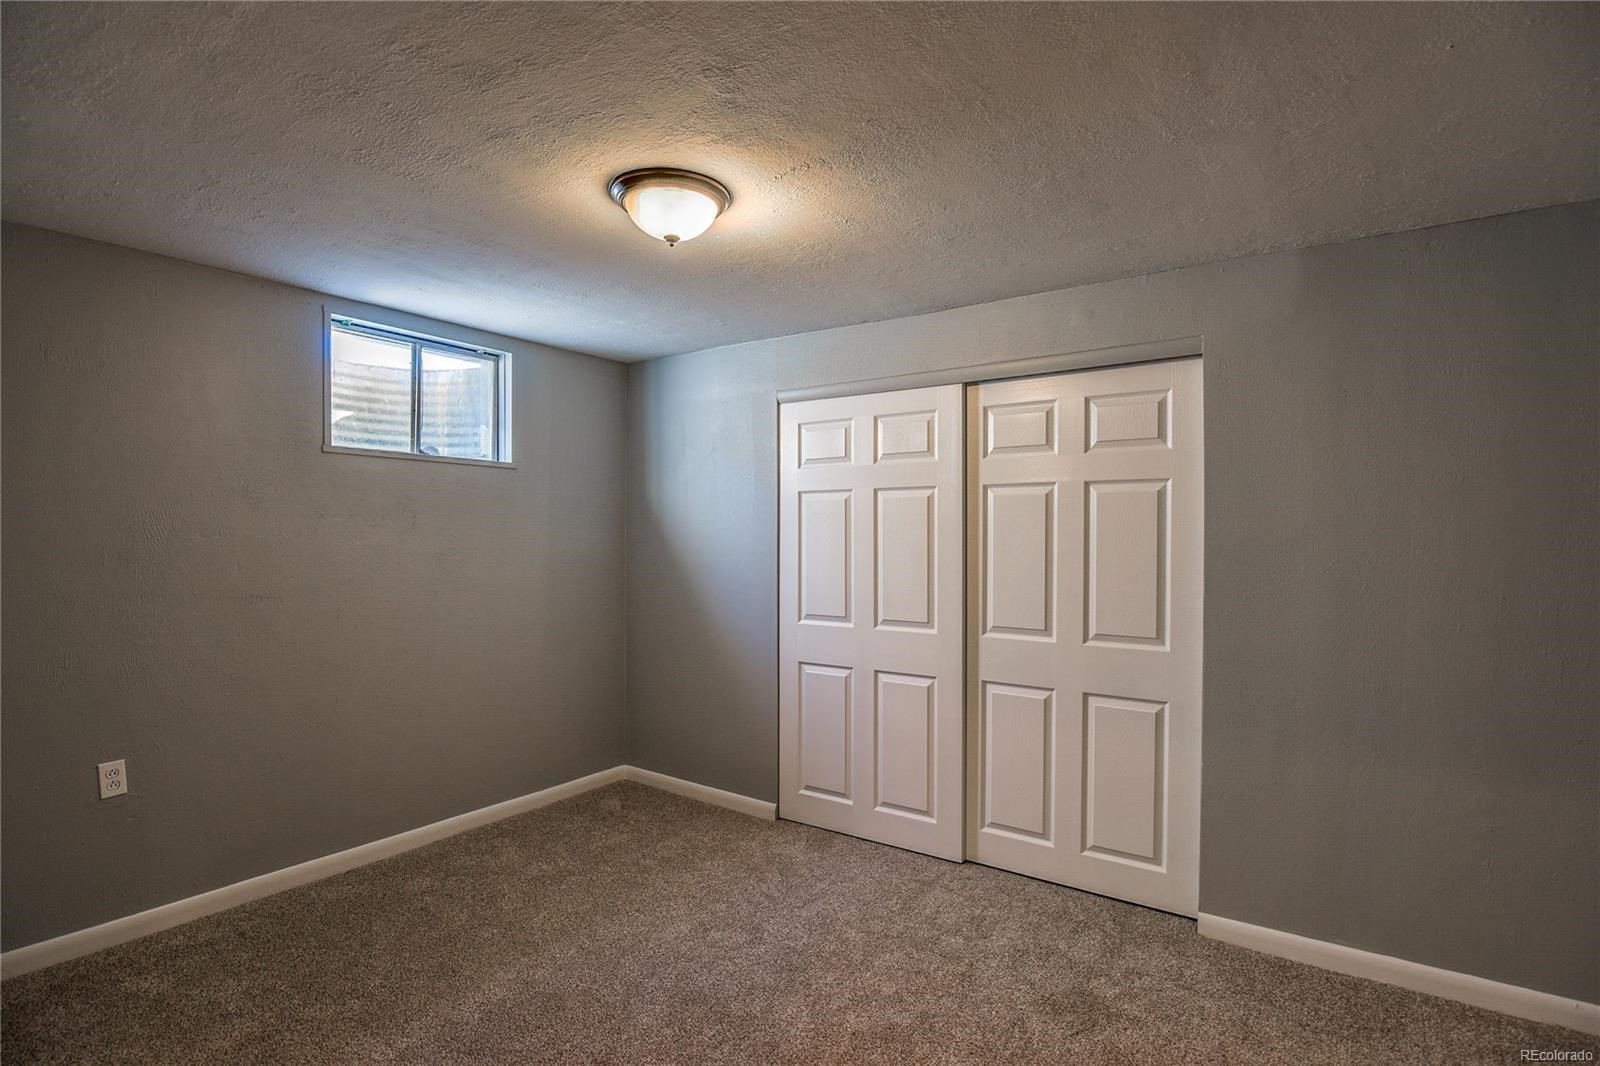 MLS# 8183776 - 25 - 2547 W 104th Circle, Westminster, CO 80234